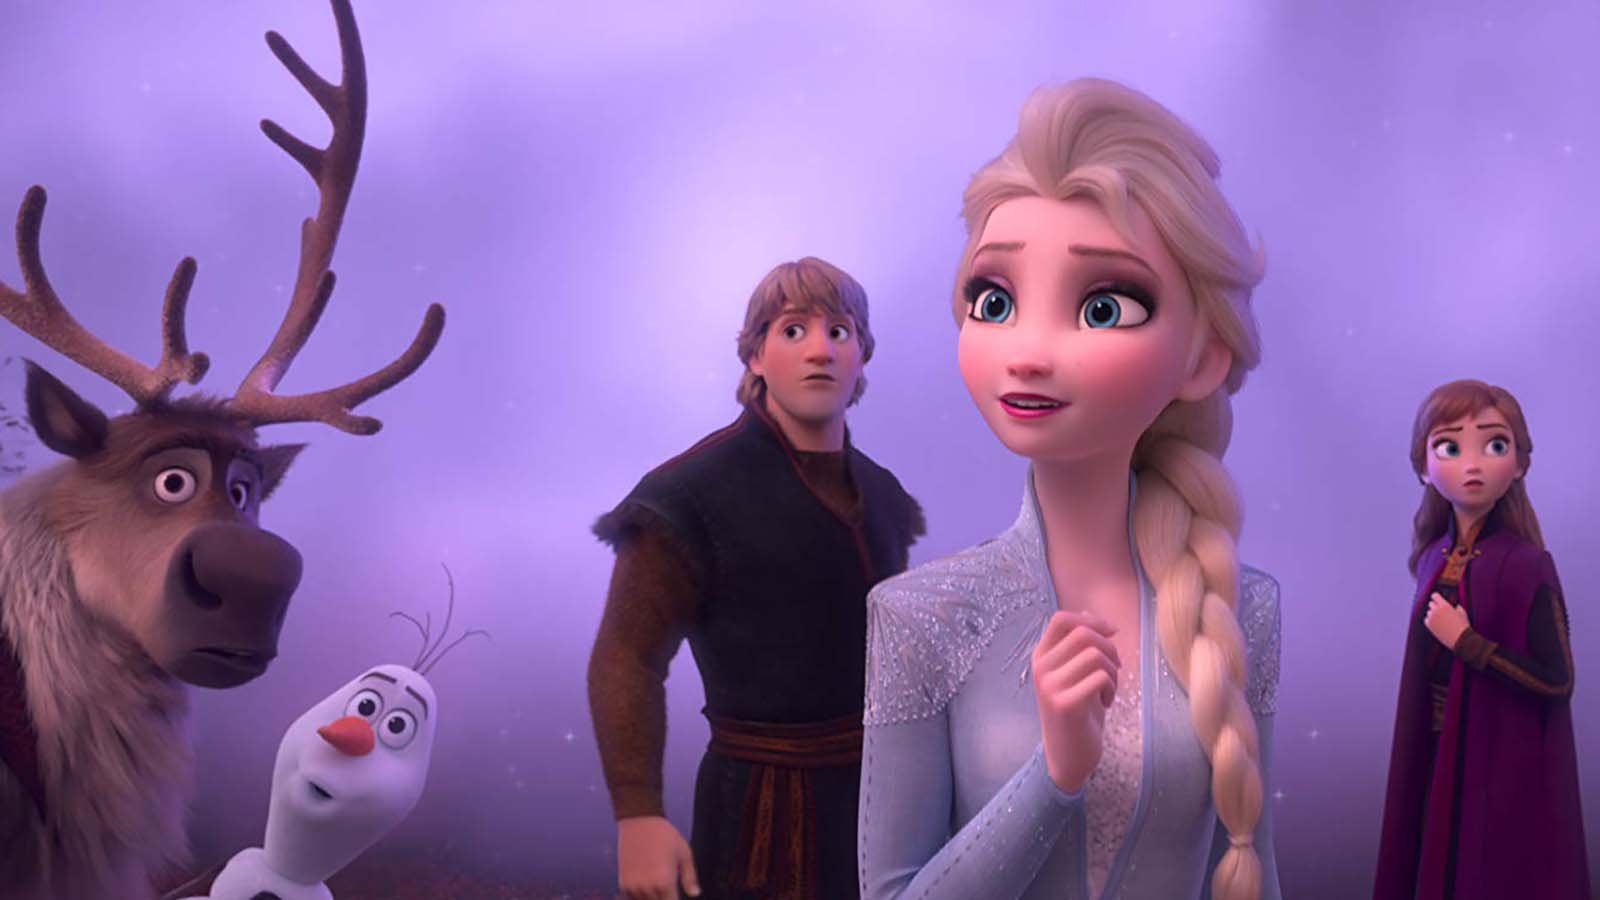 """Frozen 2,"" the studio's animated sequel to the 2013 phenomenon, brought in an estimated $127 million in North America this weekend. (Credit: Disney via CNN Wire)"